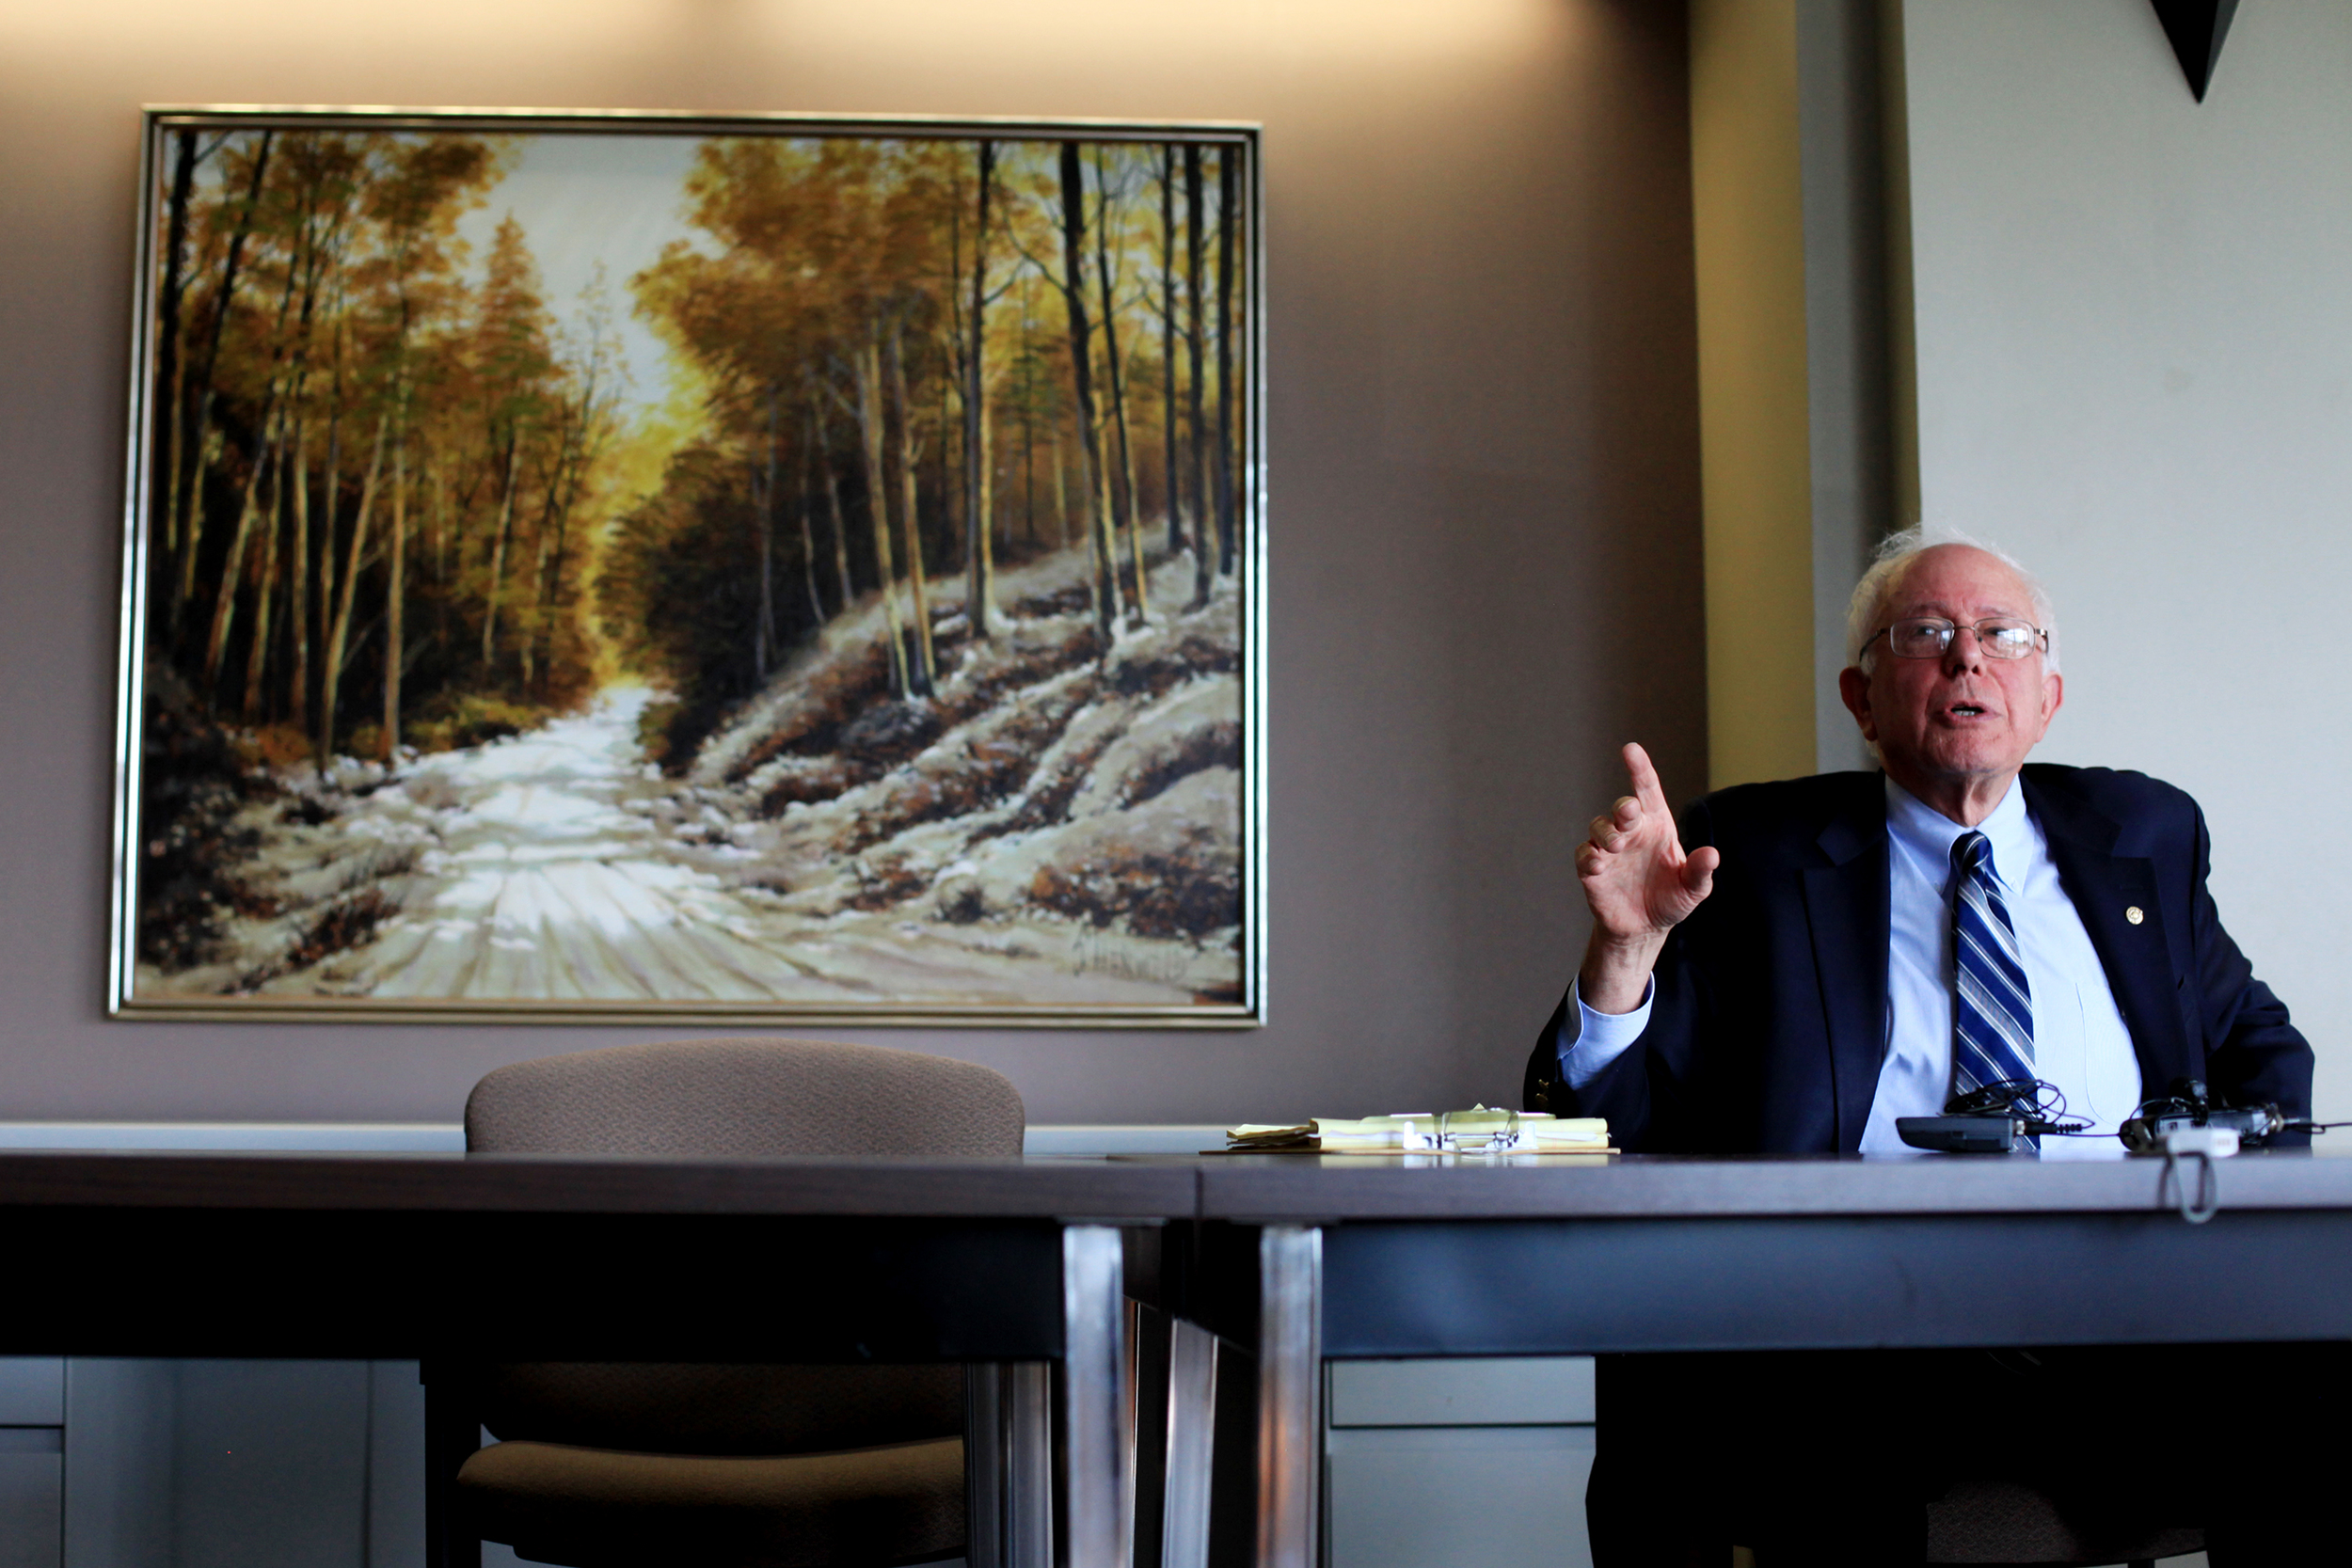 Senate Veterans Affairs Committee Chairman Sen. Bernie Sanders, I-Vt., answers questions about legislation that Congress recently passed to reform the Department of Veterans Affairs during a press conference at the White River Junction VA Medical Center on August 6, 2014.